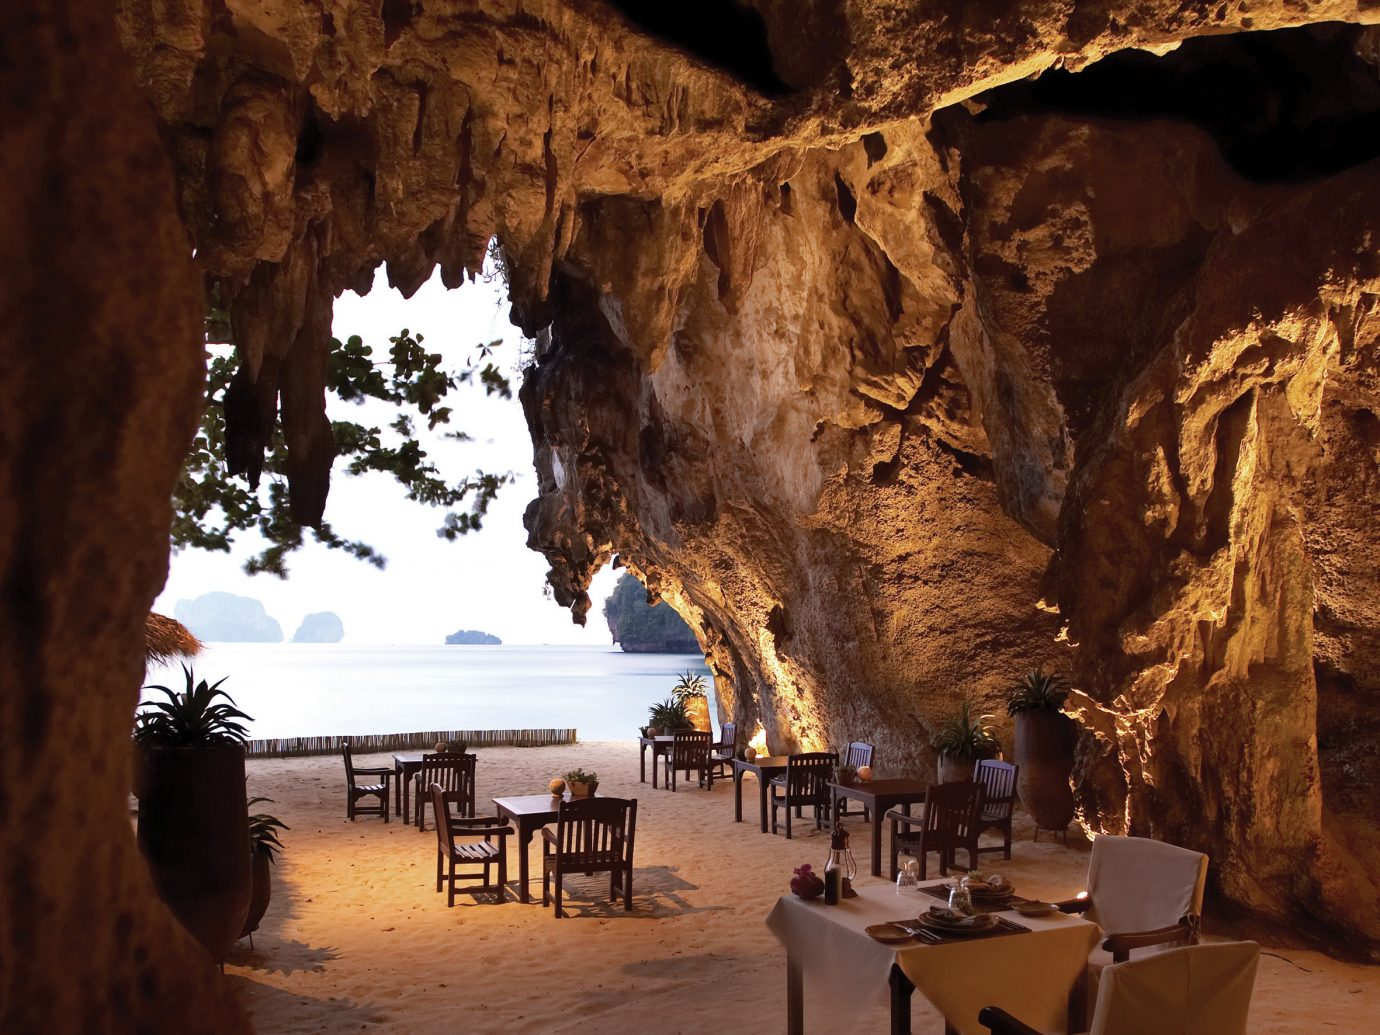 Bar Dining Drink Eat Elegant Food + Drink Luxury Modern outdoor Nature water cave geographical feature landform Beach rock formation several